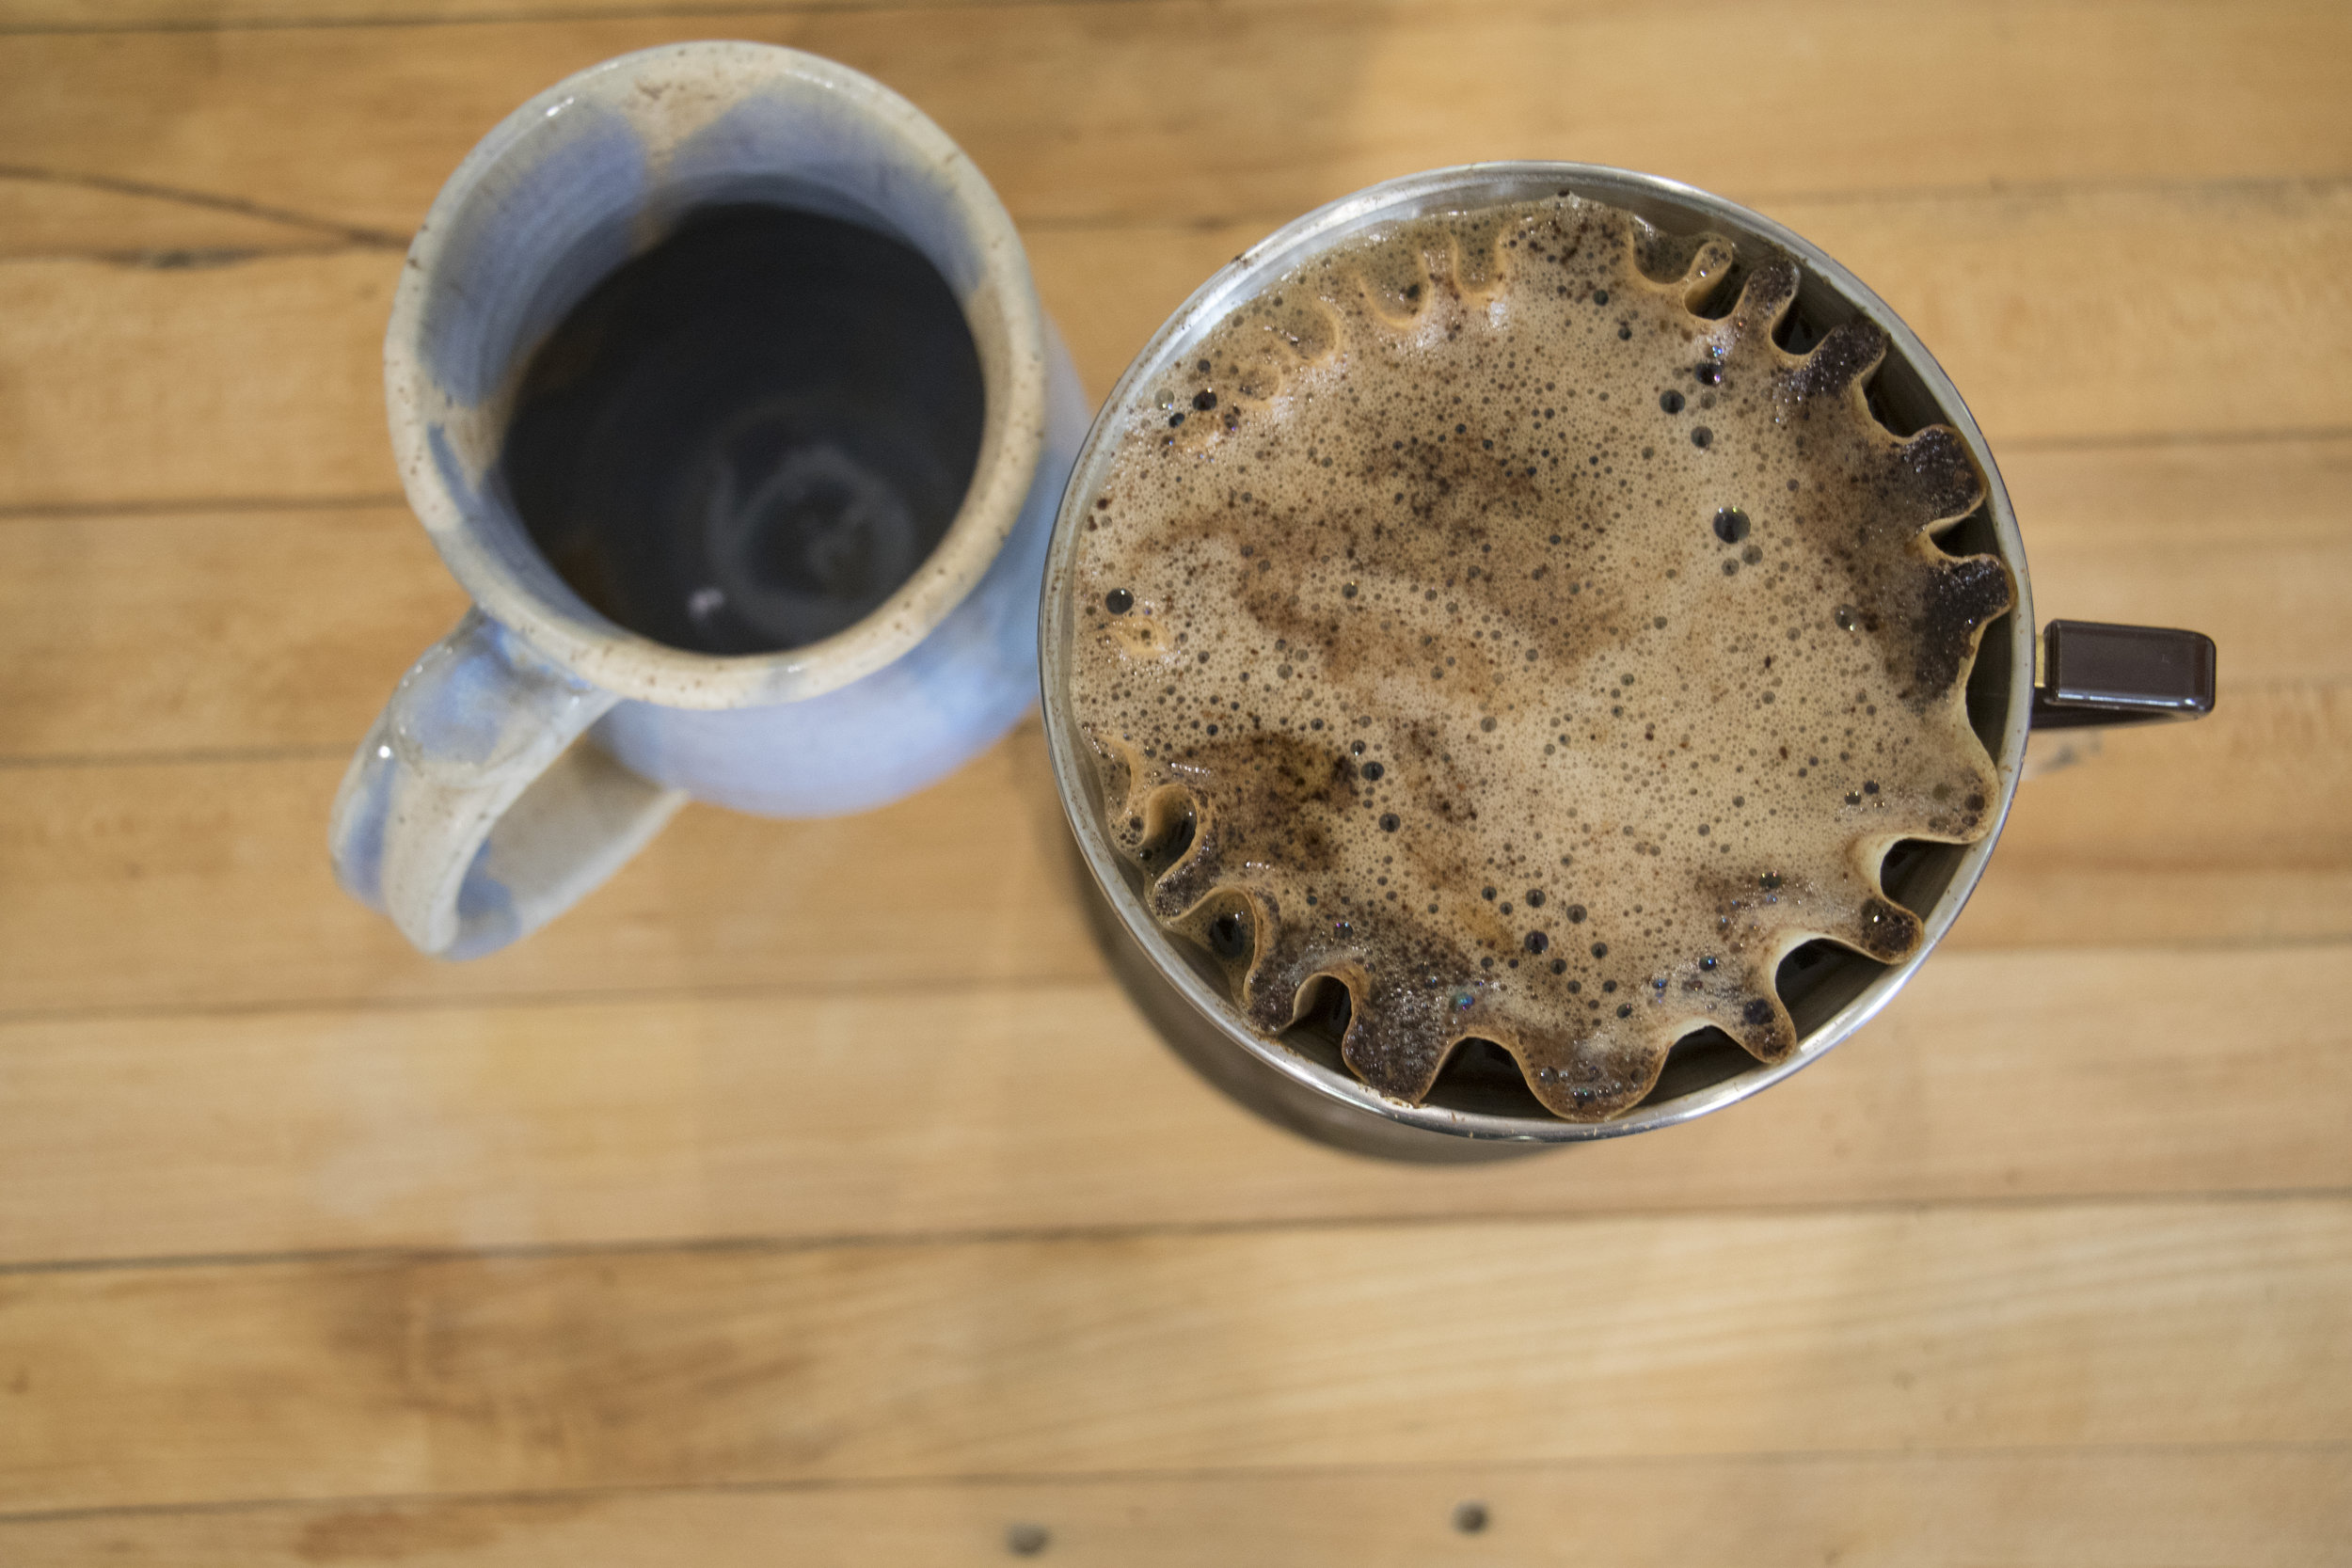 Brewing pour-over coffee takes a creative approach and the patience to try new things.